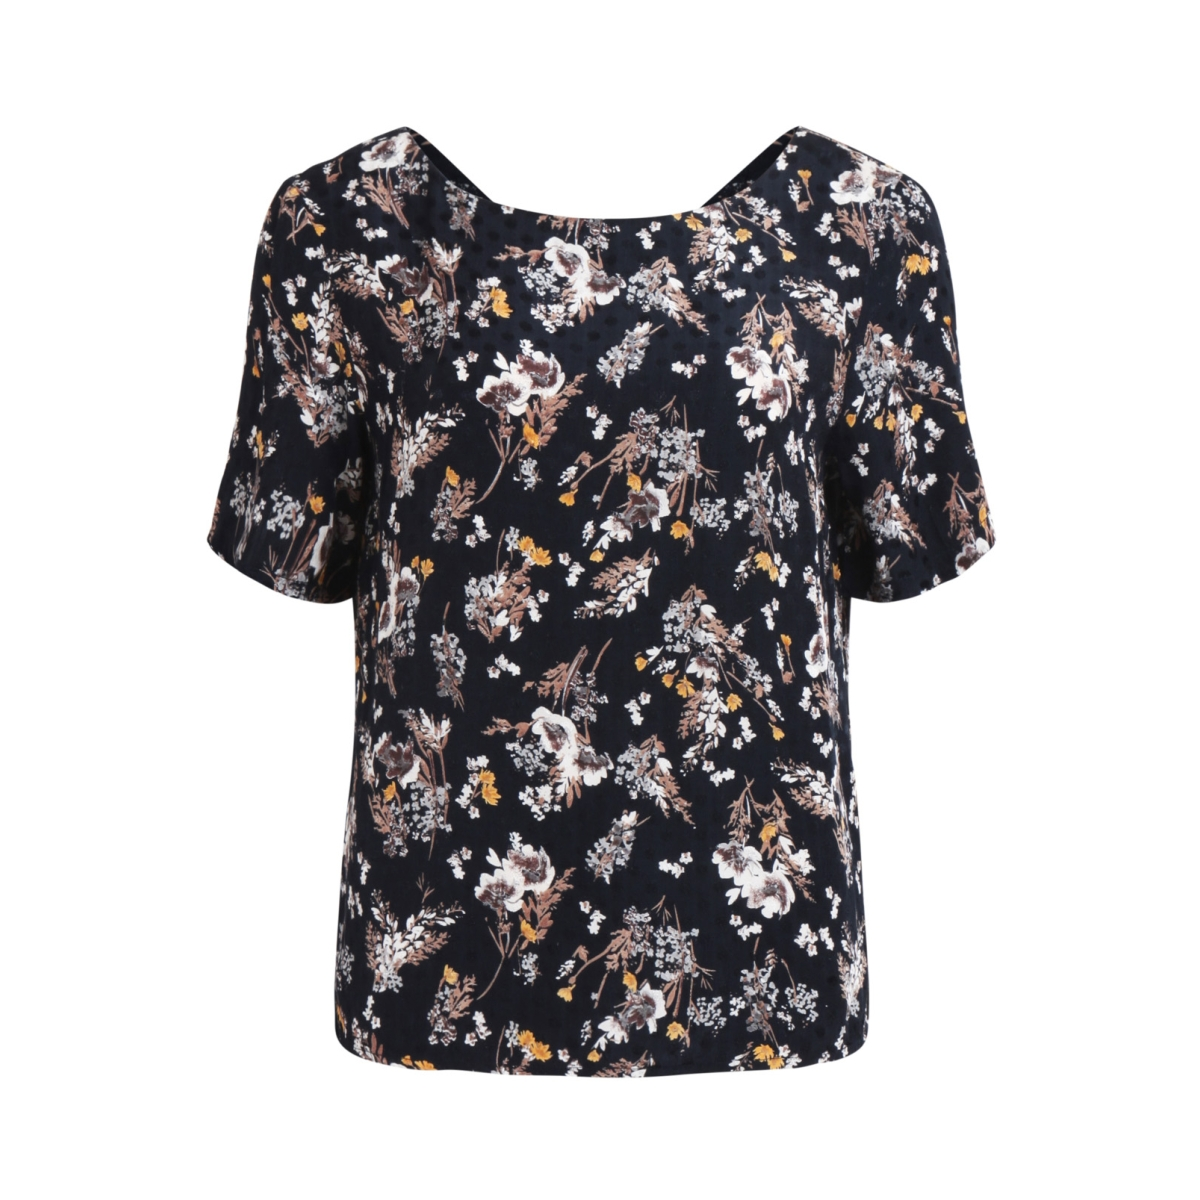 vibeth s/s top 14044685 vila blouse eclipse/flowerprint